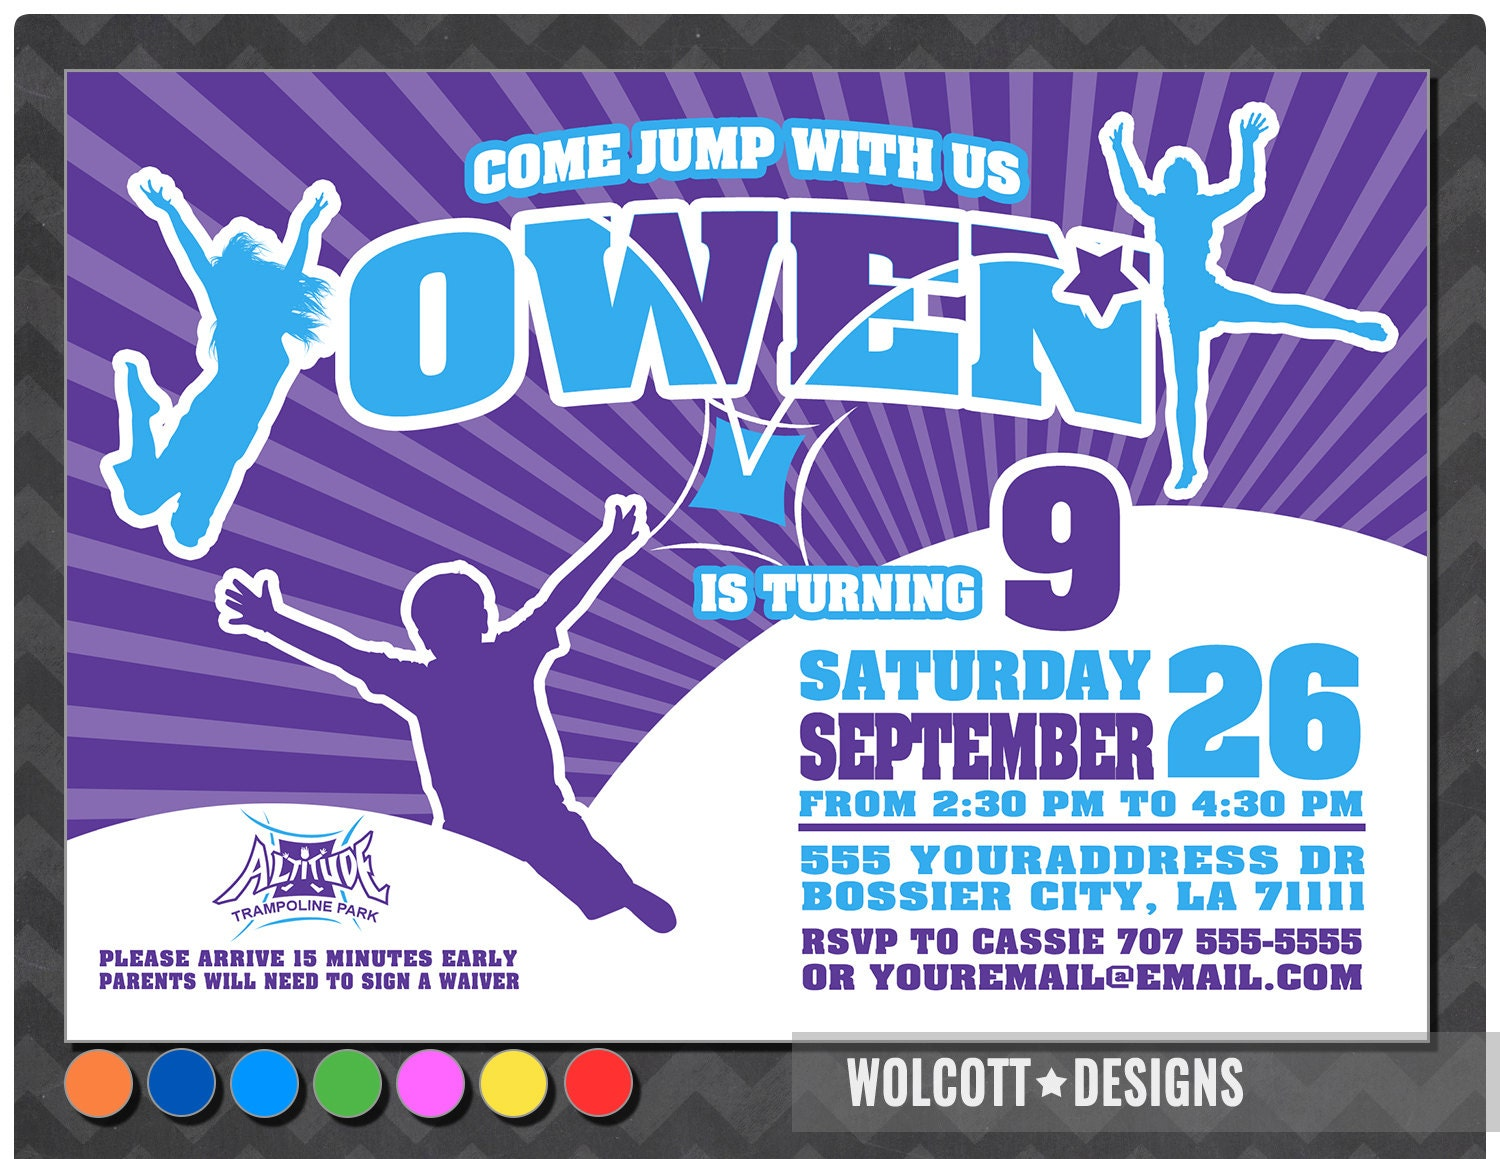 trampoline park altitude trampoline park trampoline party invitation bounce house invitation trampoline park invitation trampoline birthday invitation